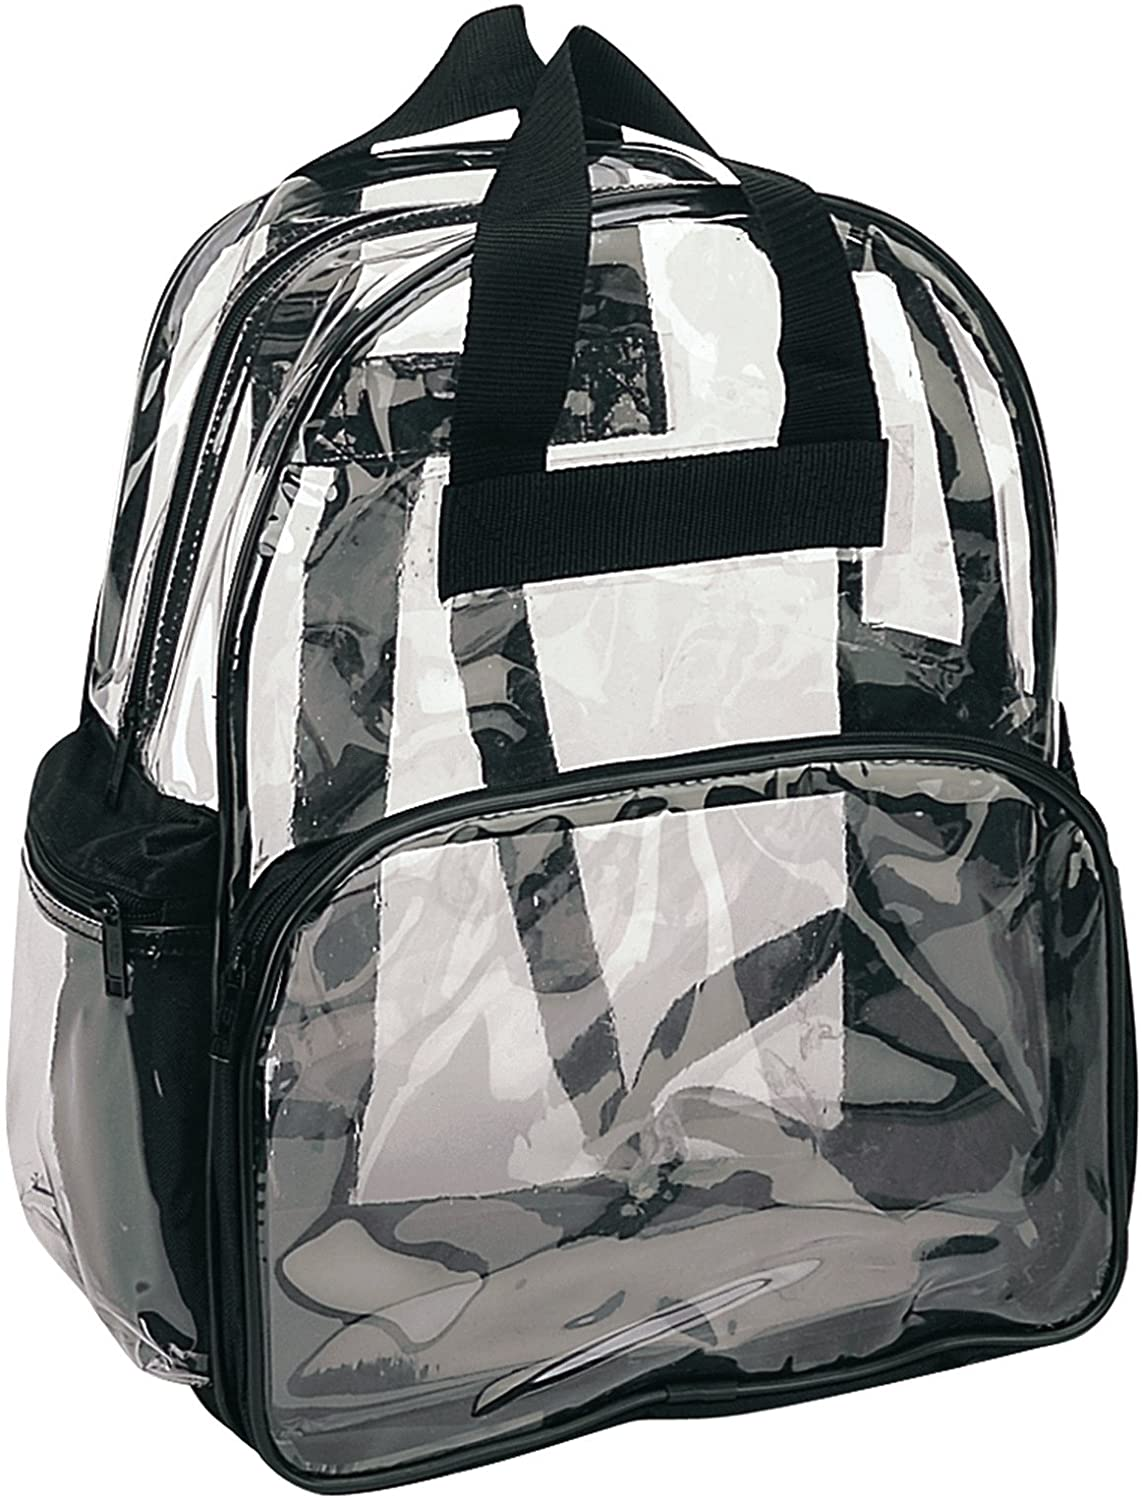 ProEquip Travel Bag Clear Unisex Transparent School Security Backpack Stadium Bag(Clear)